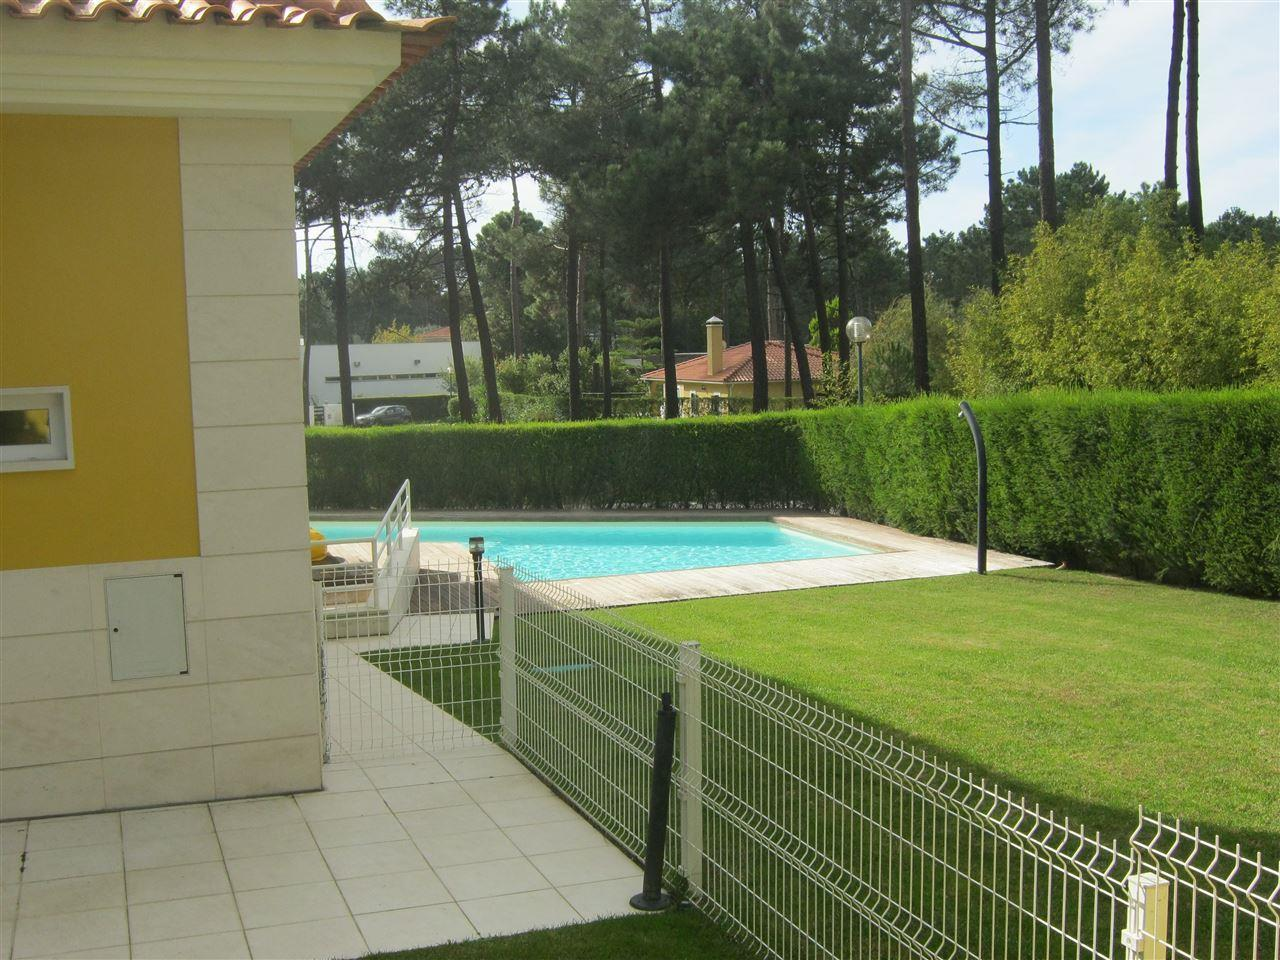 Single Family Home for Sale at House, 4 bedrooms, for Sale Other Portugal, Other Areas In Portugal Portugal